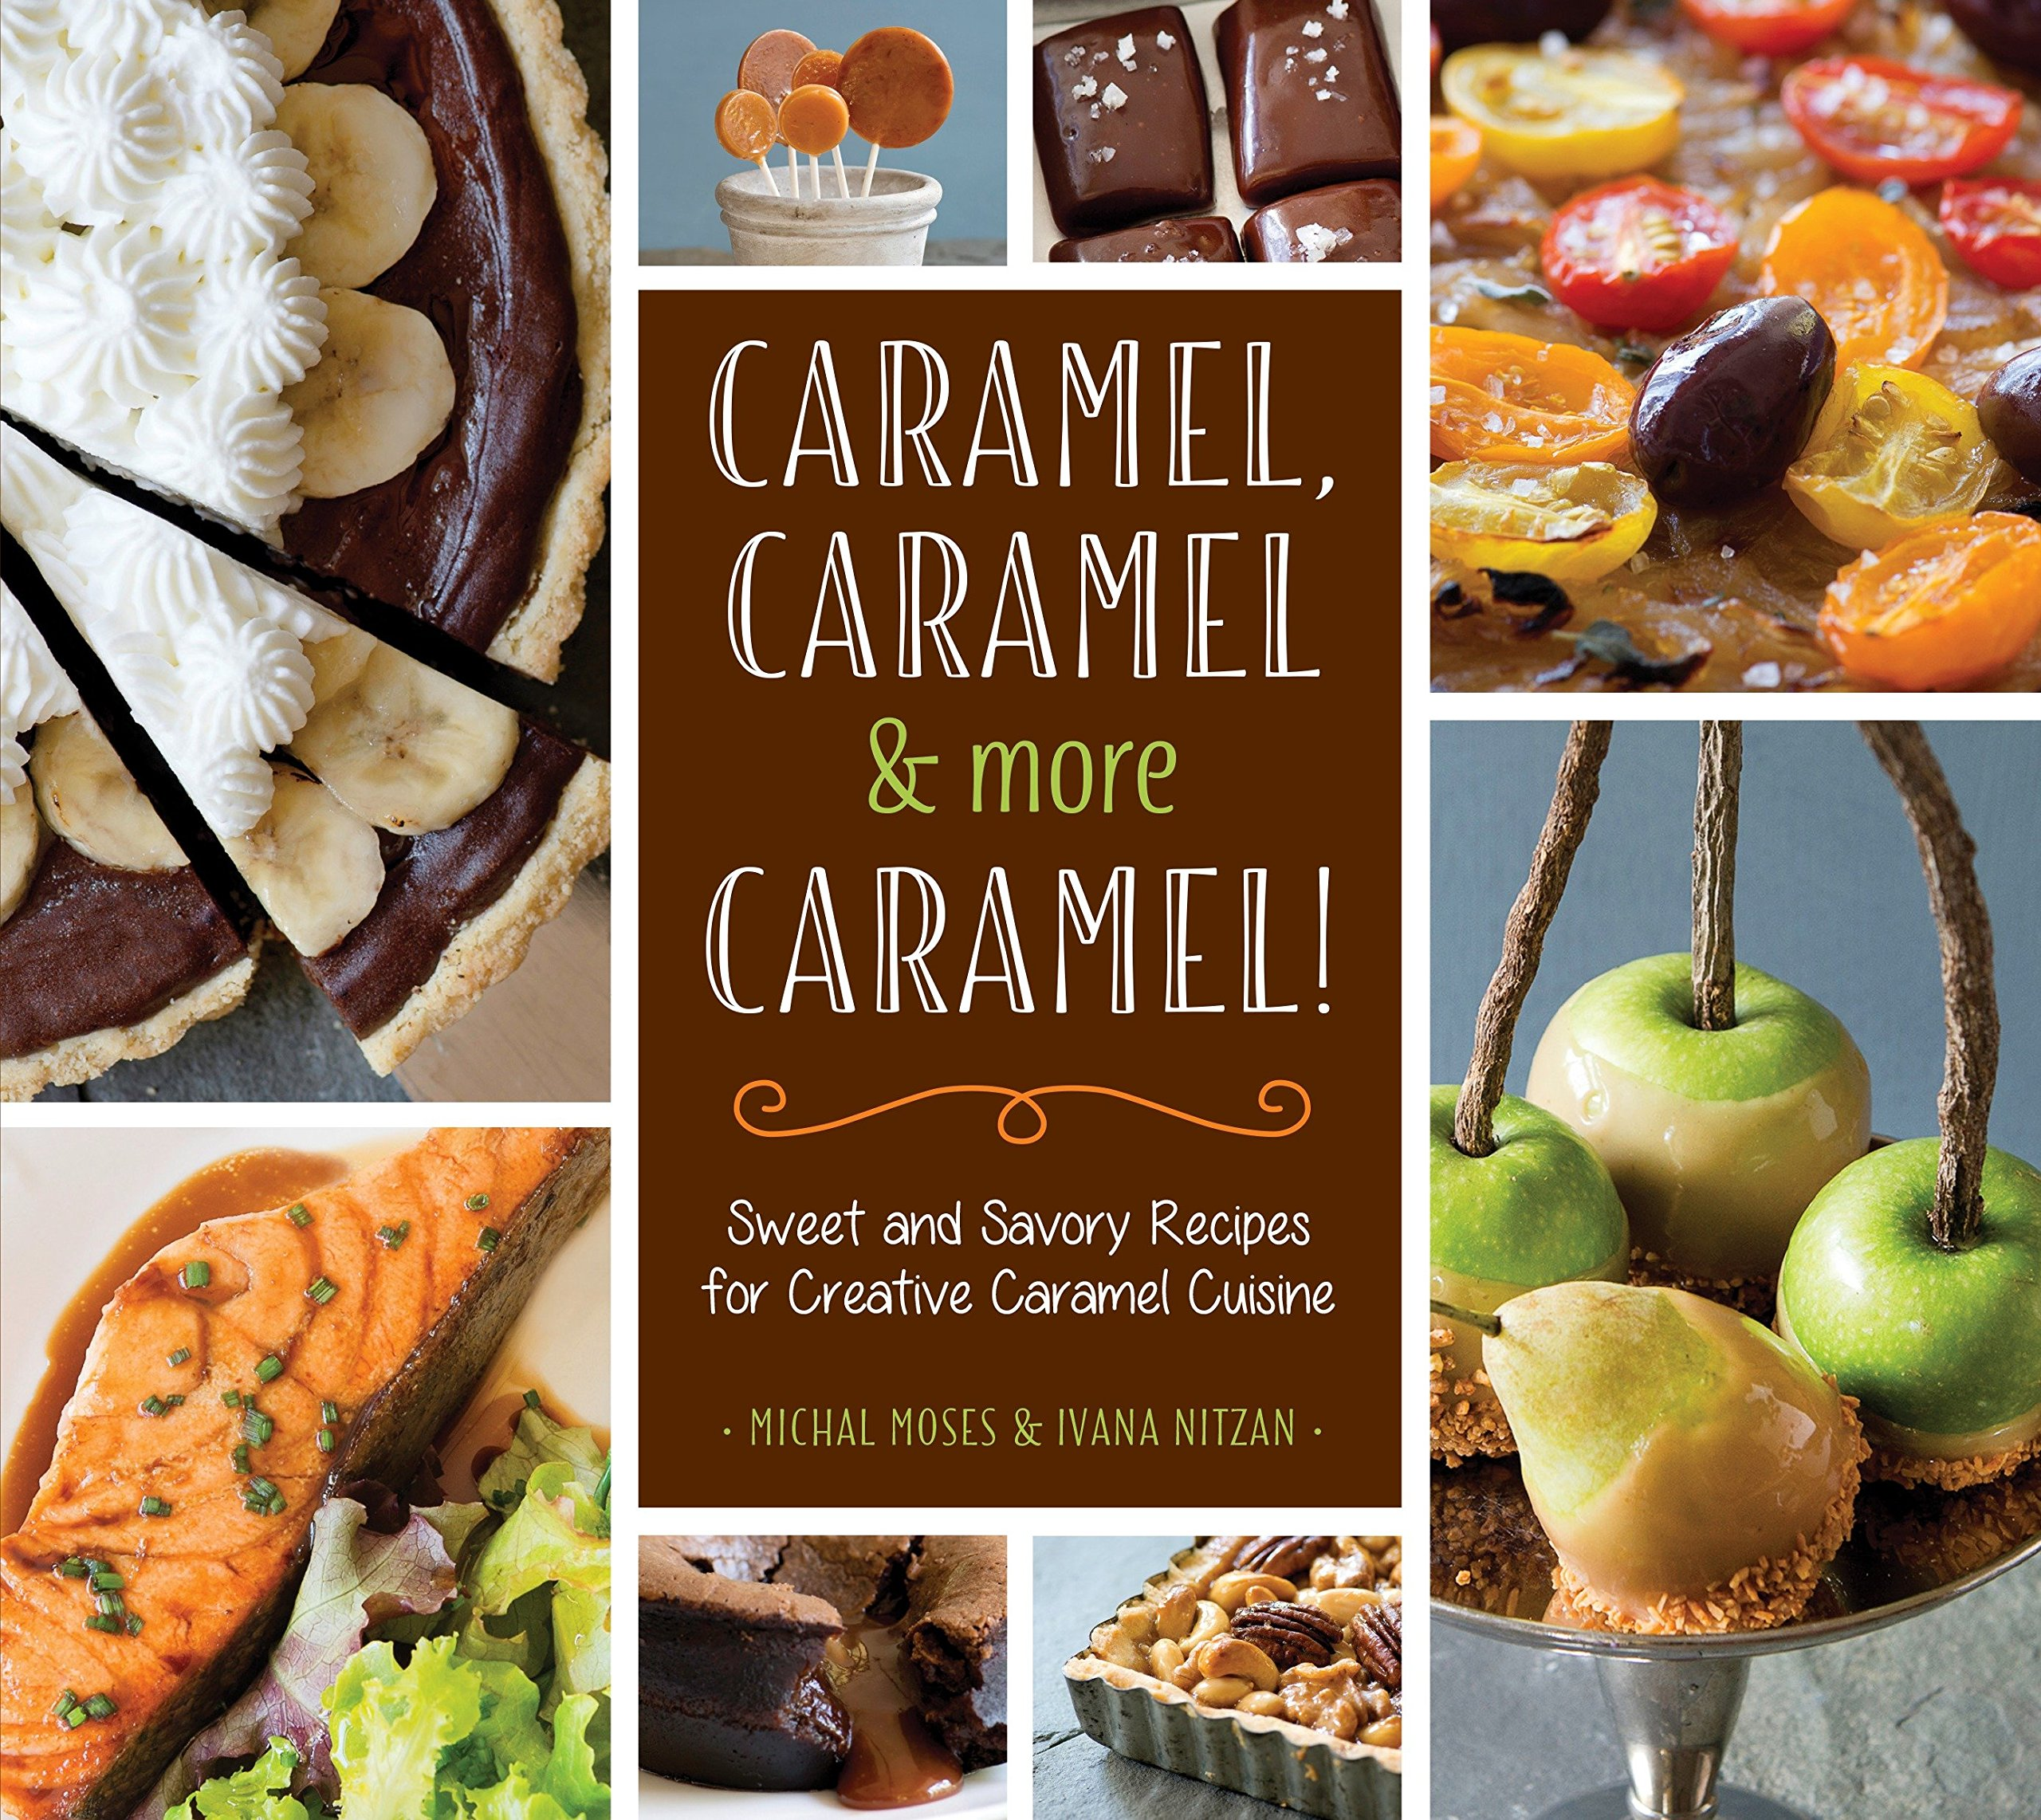 Caramel, Caramel & More Caramel!: Sweet and Savory Recipes for Creative Caramel Cuisine: Amazon.es: Michal Moses, Ivana Nitzan: Libros en idiomas ...